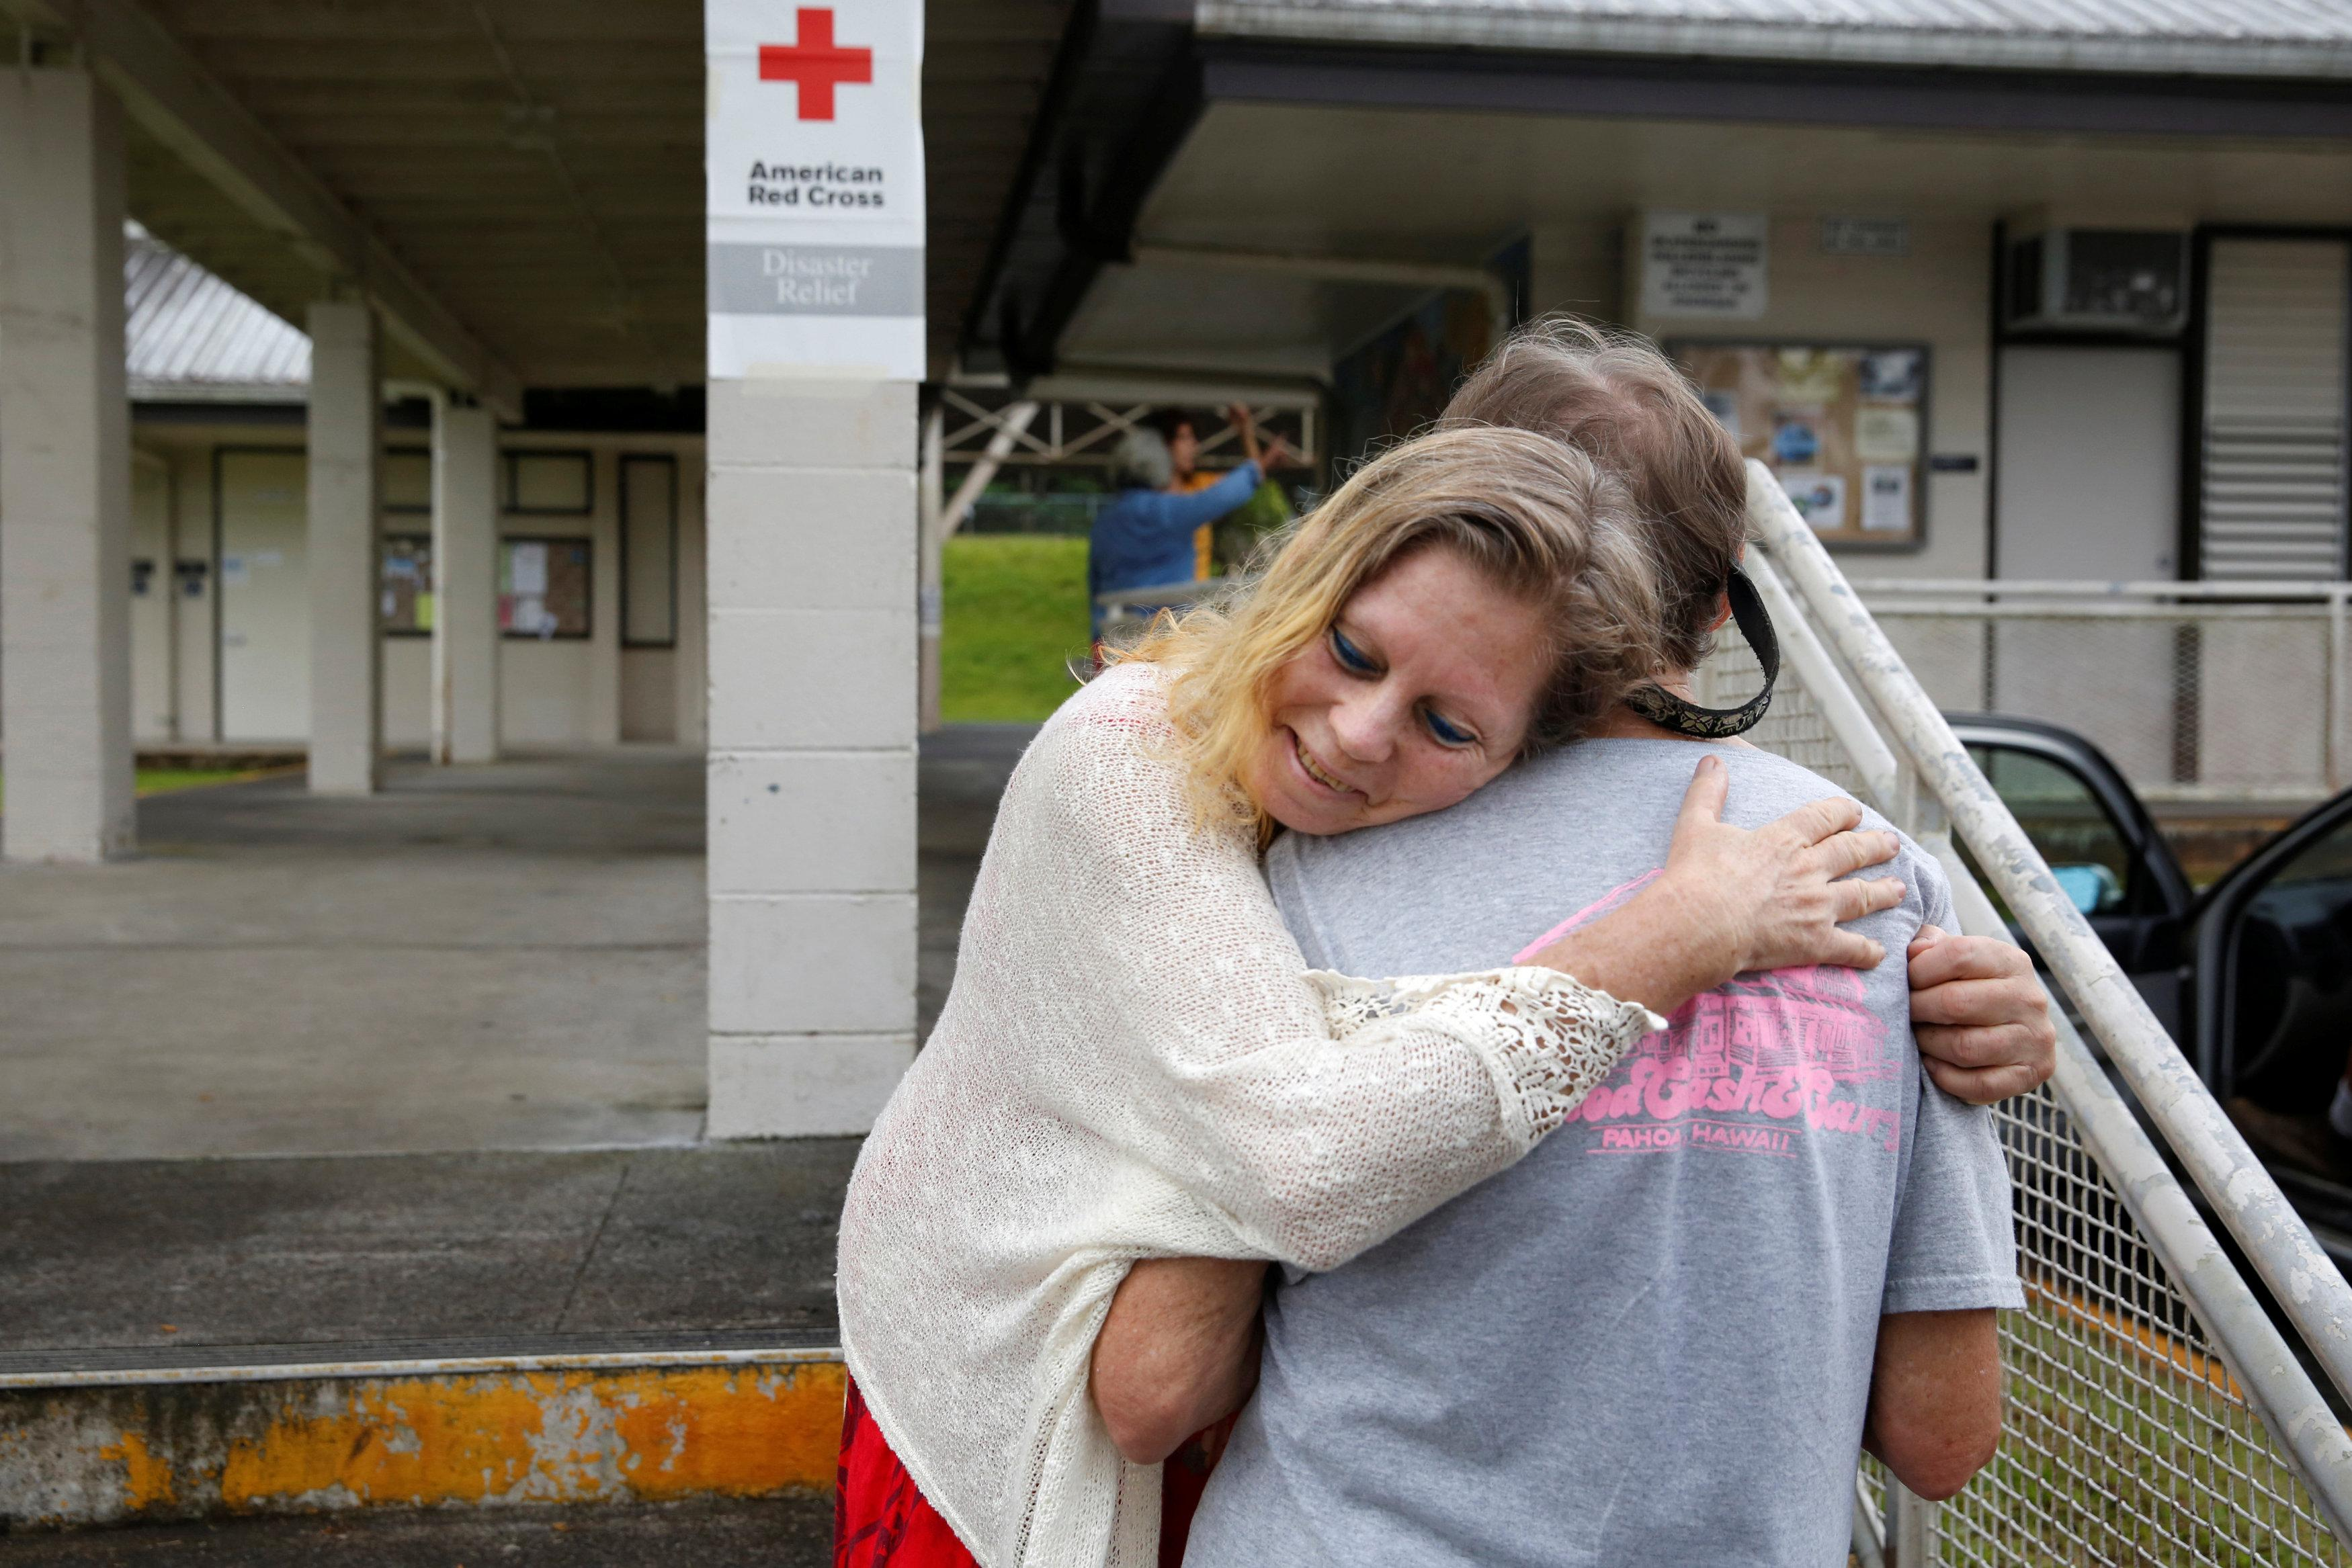 Carolyn McNamara, 70, hugs her neighbor Paul Campbell, 68, at an evacuation center in Pahoa after moving out of their homes in the Puna community of Leilani Estates after the Kilauea Volcano, one of five on the island, erupted on Thursday after a series of earthquakes over the last couple of days, in Hawaii, U.S., May 4, 2018. Terray Sylvester